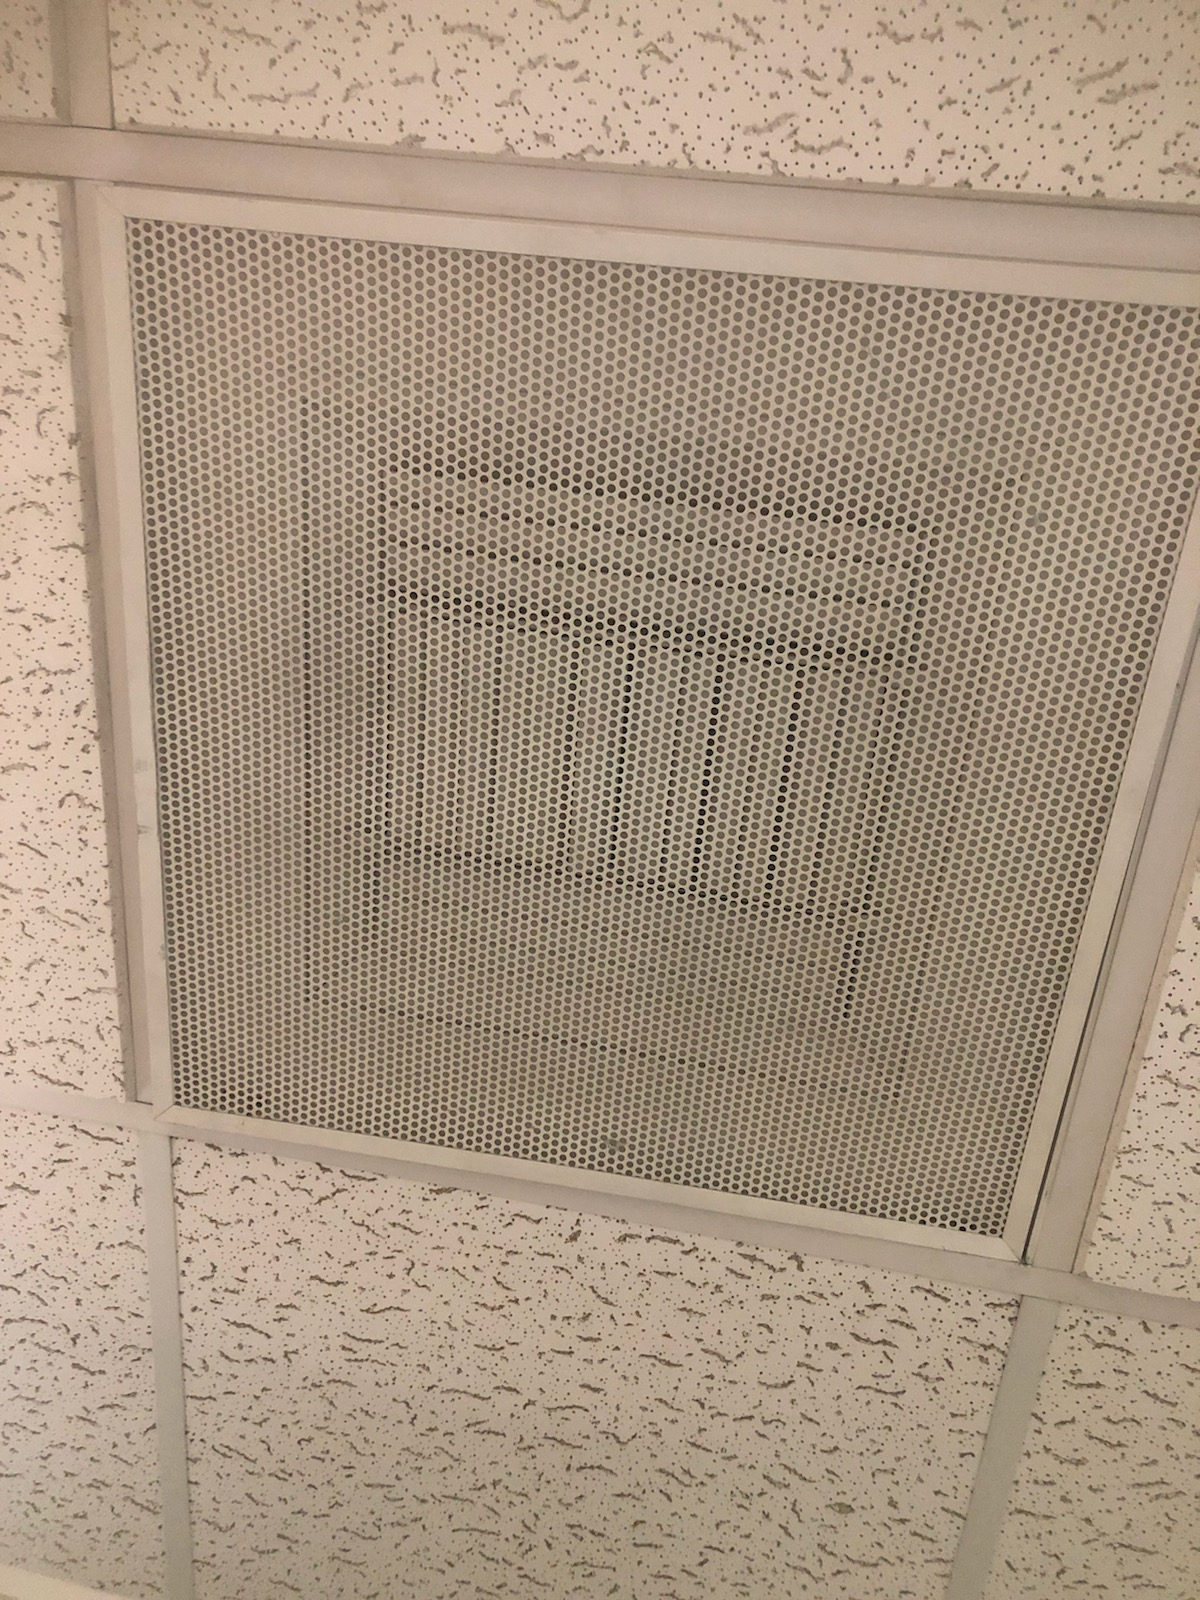 Professional Air Duct Cleaning - Houston TX